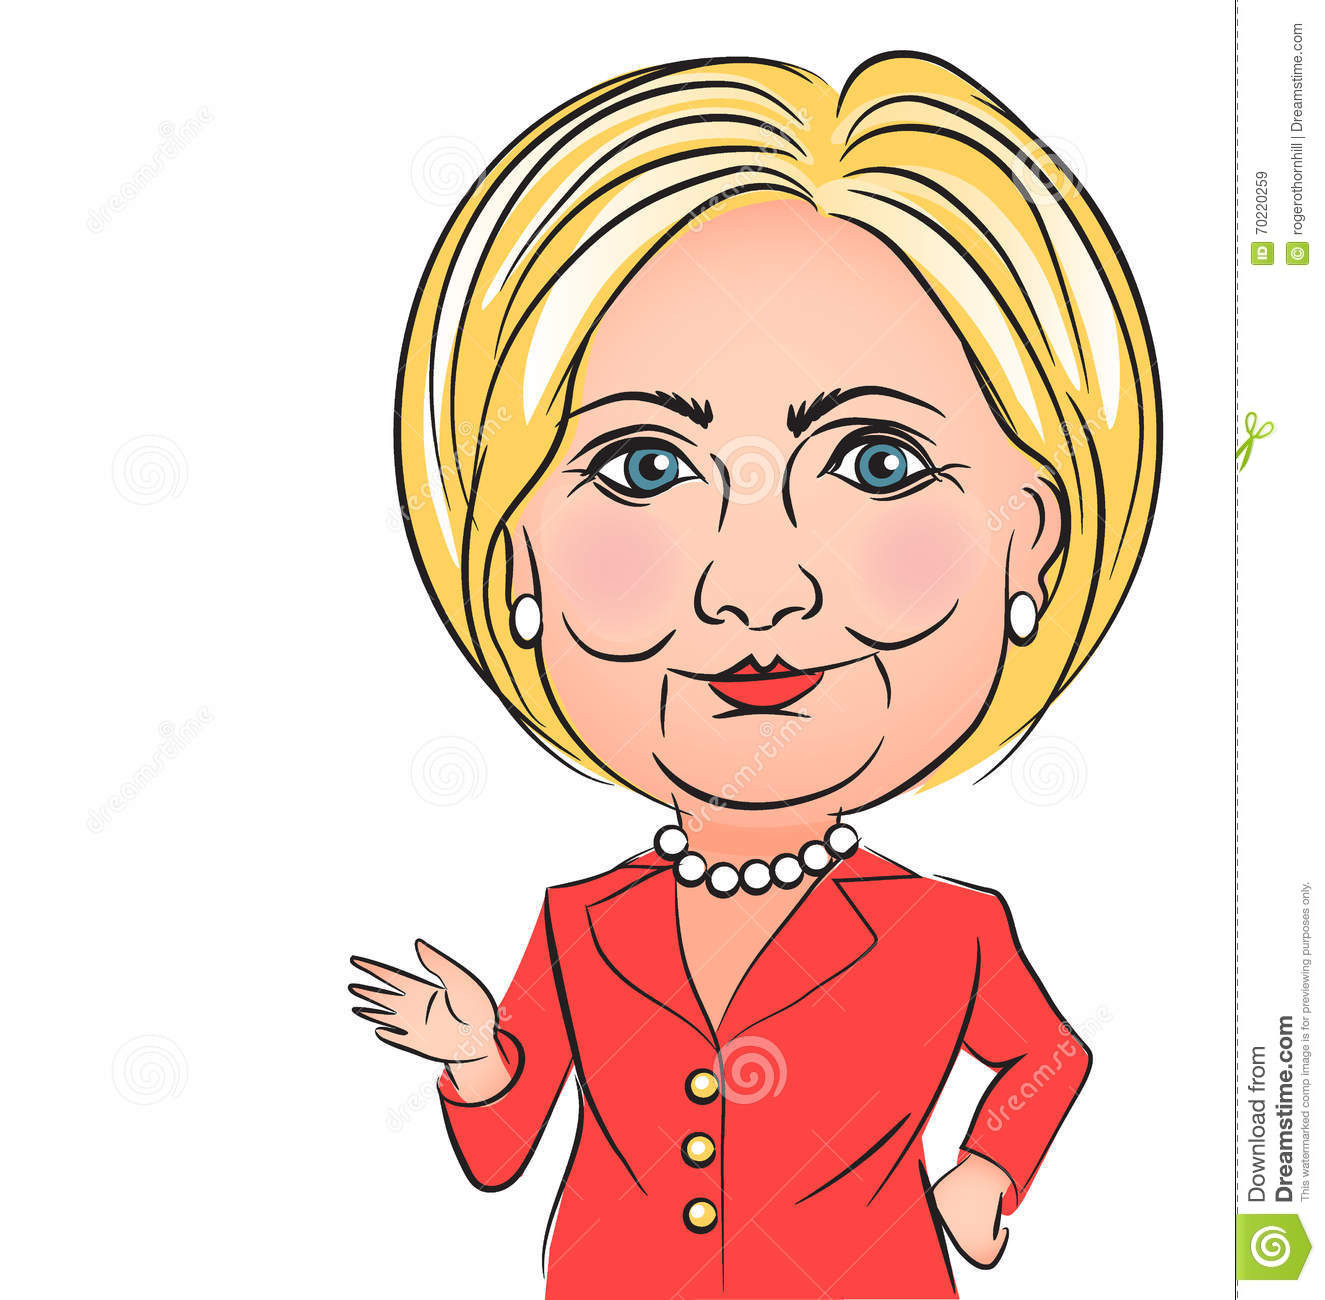 Illustration Of Democratic Presidential Candidate Hillary Clinton